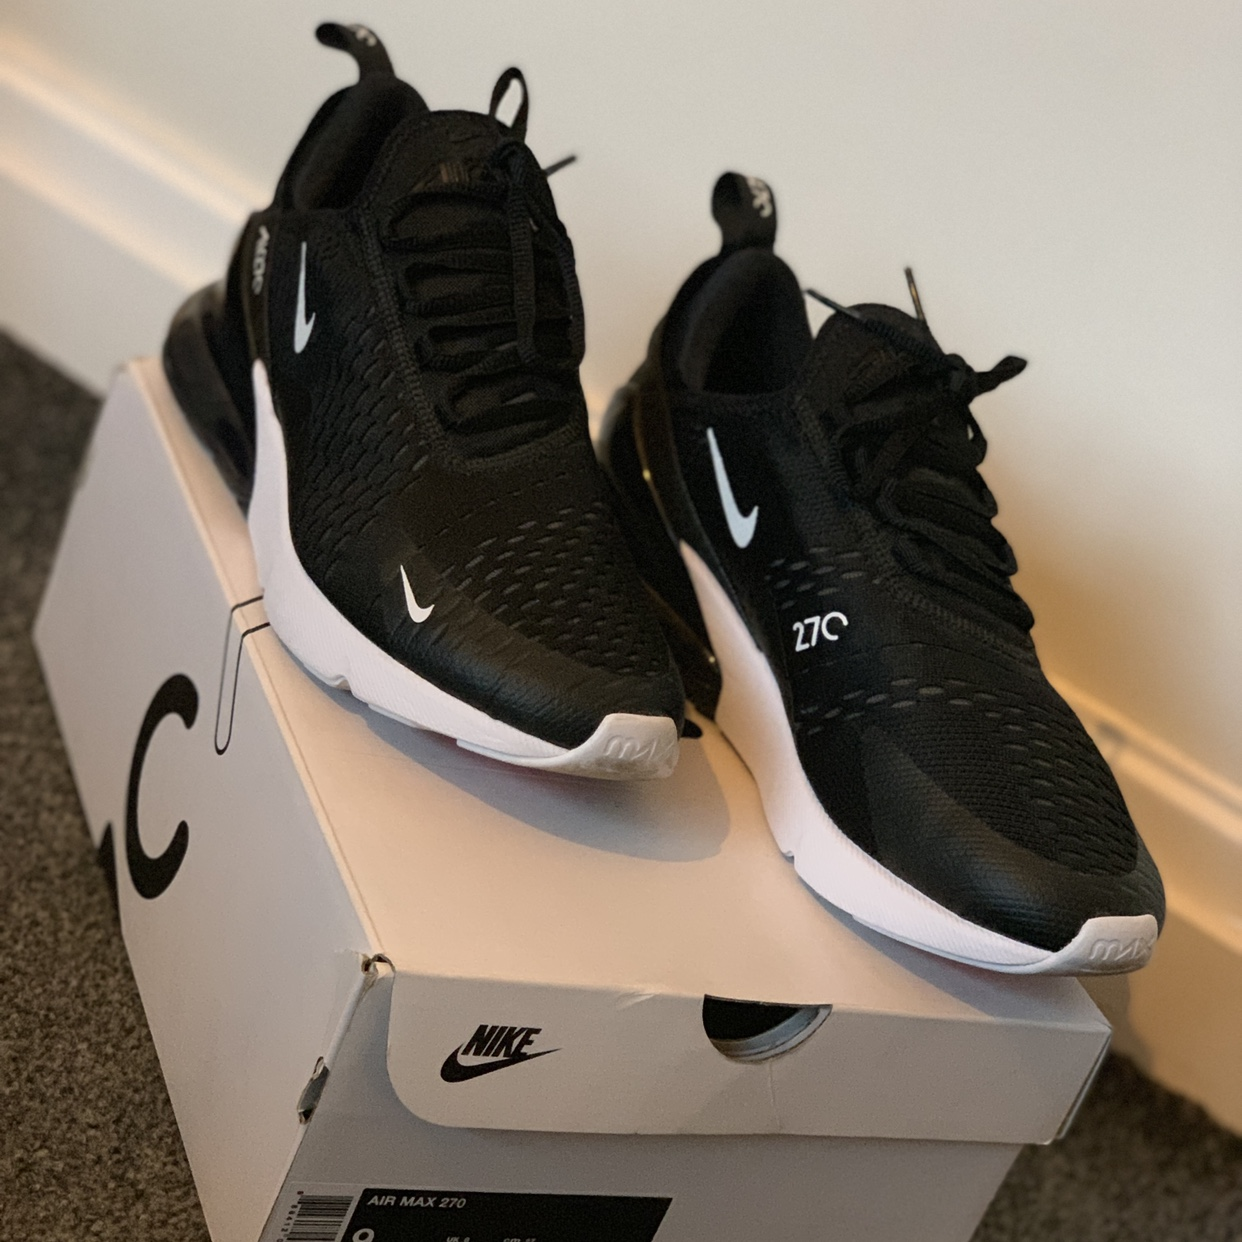 Nike, air max all black. White spots on sole. Depop